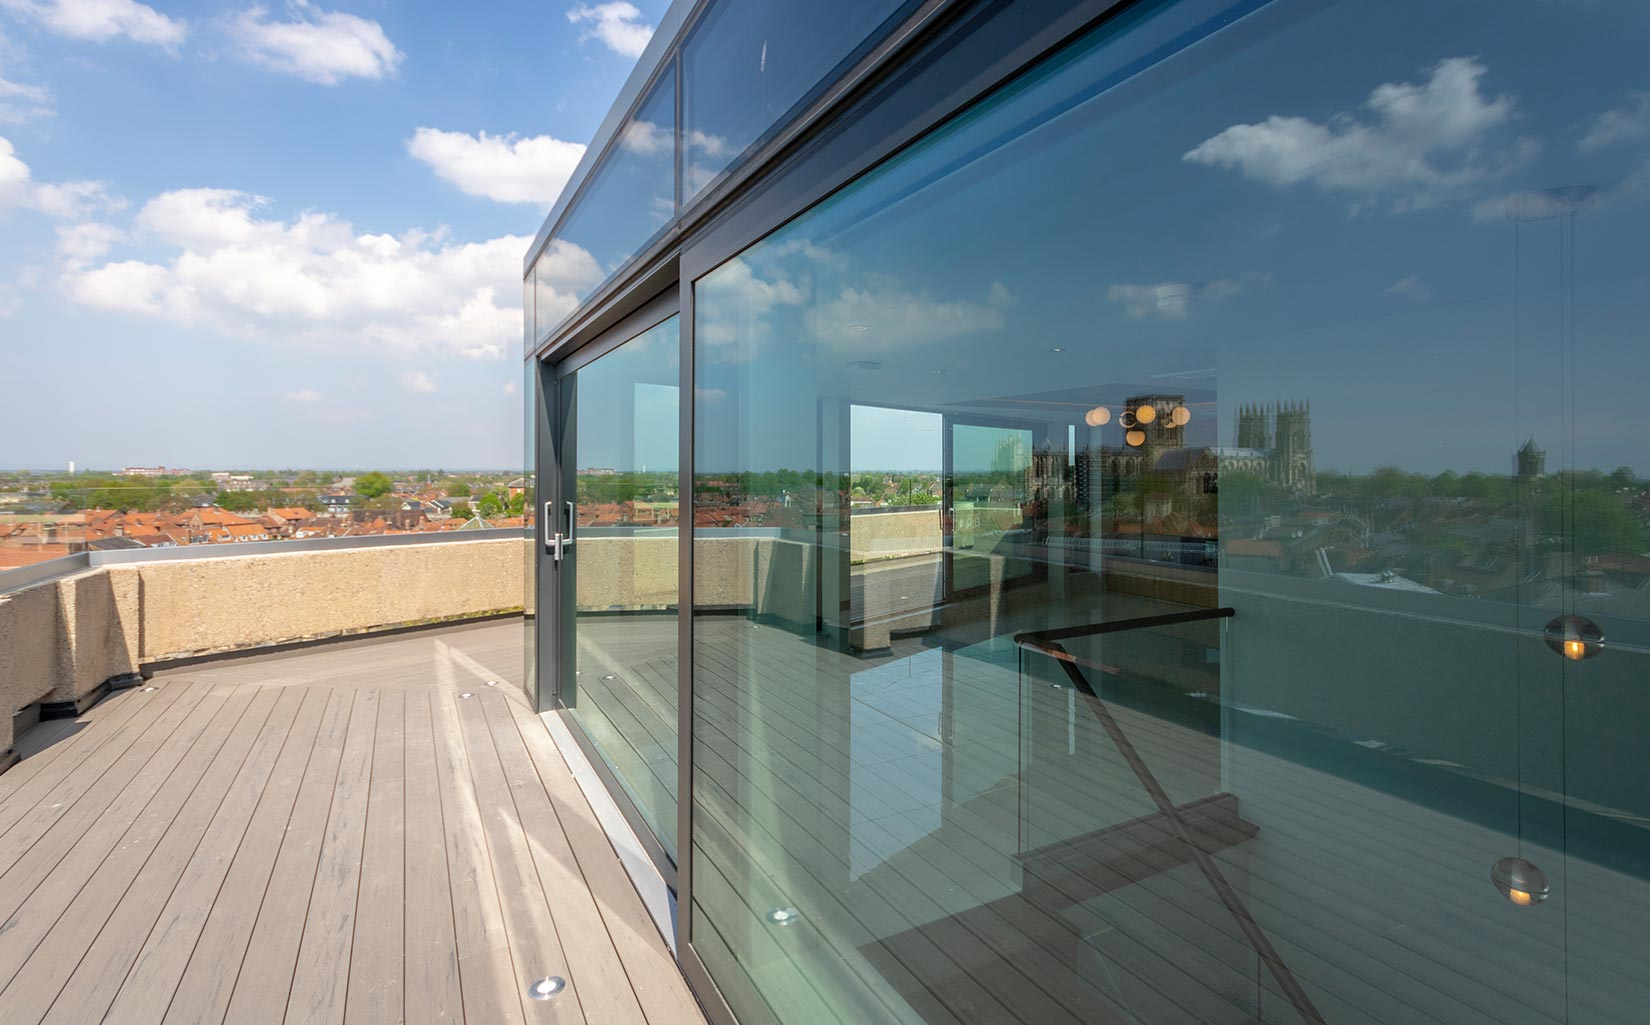 Stonebow House, York, Roof Terrace - Photograph © Oakgate Developments Plc